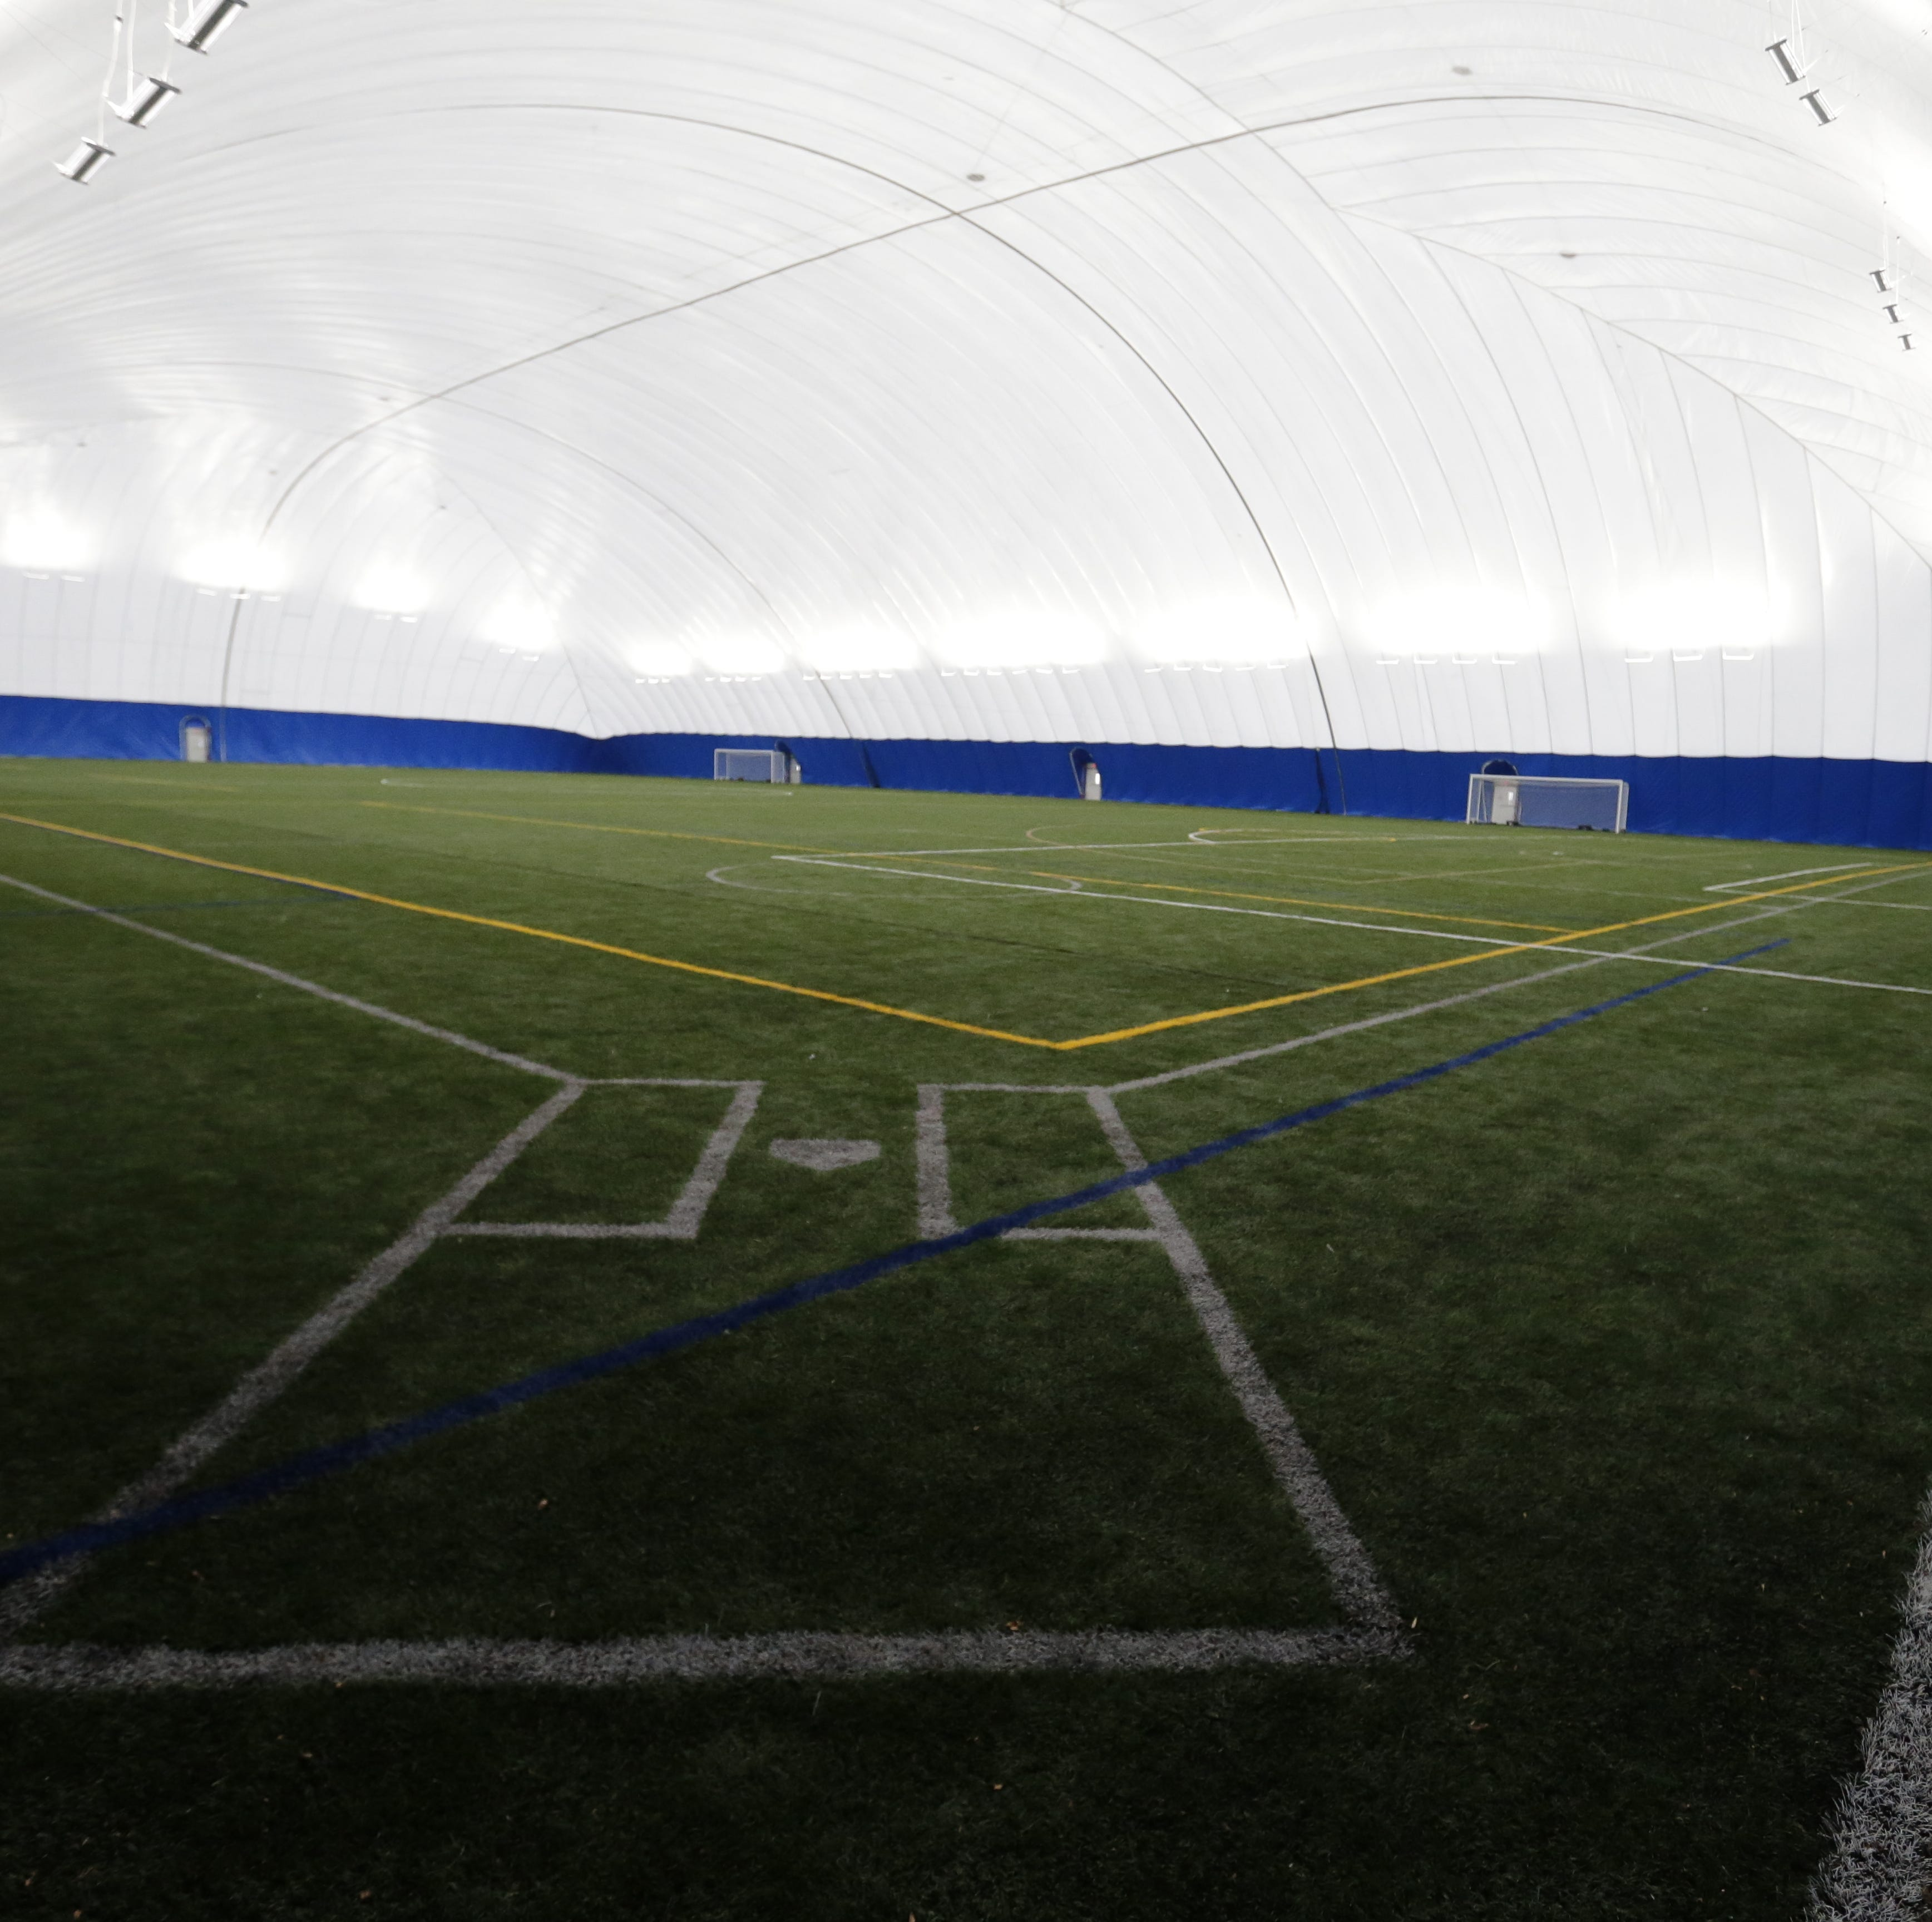 UWO Rec Plex seasonal dome offers year-round athletic events for students, community